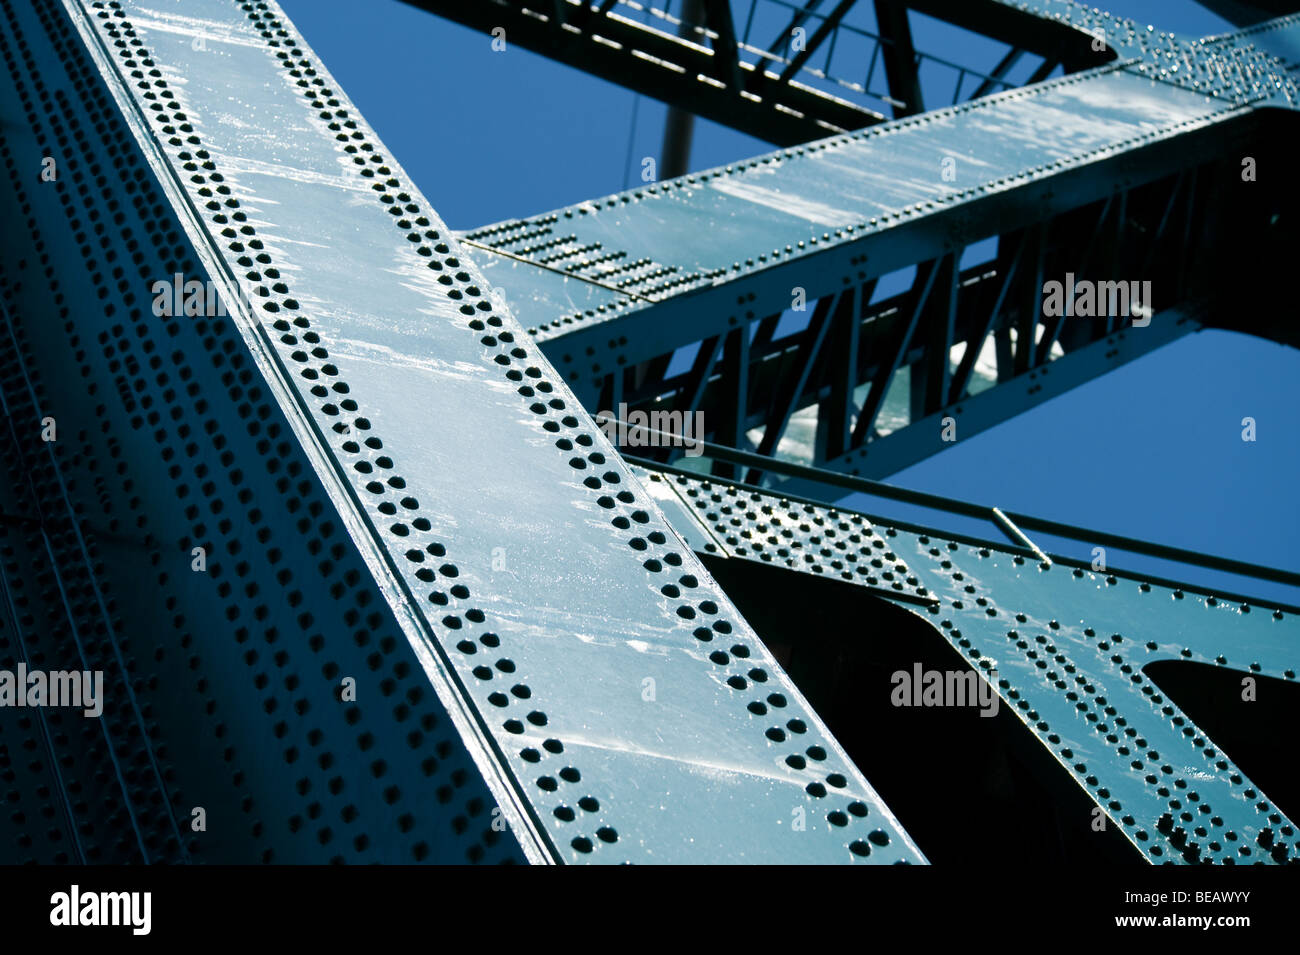 riveted bridge support in green - Stock Image